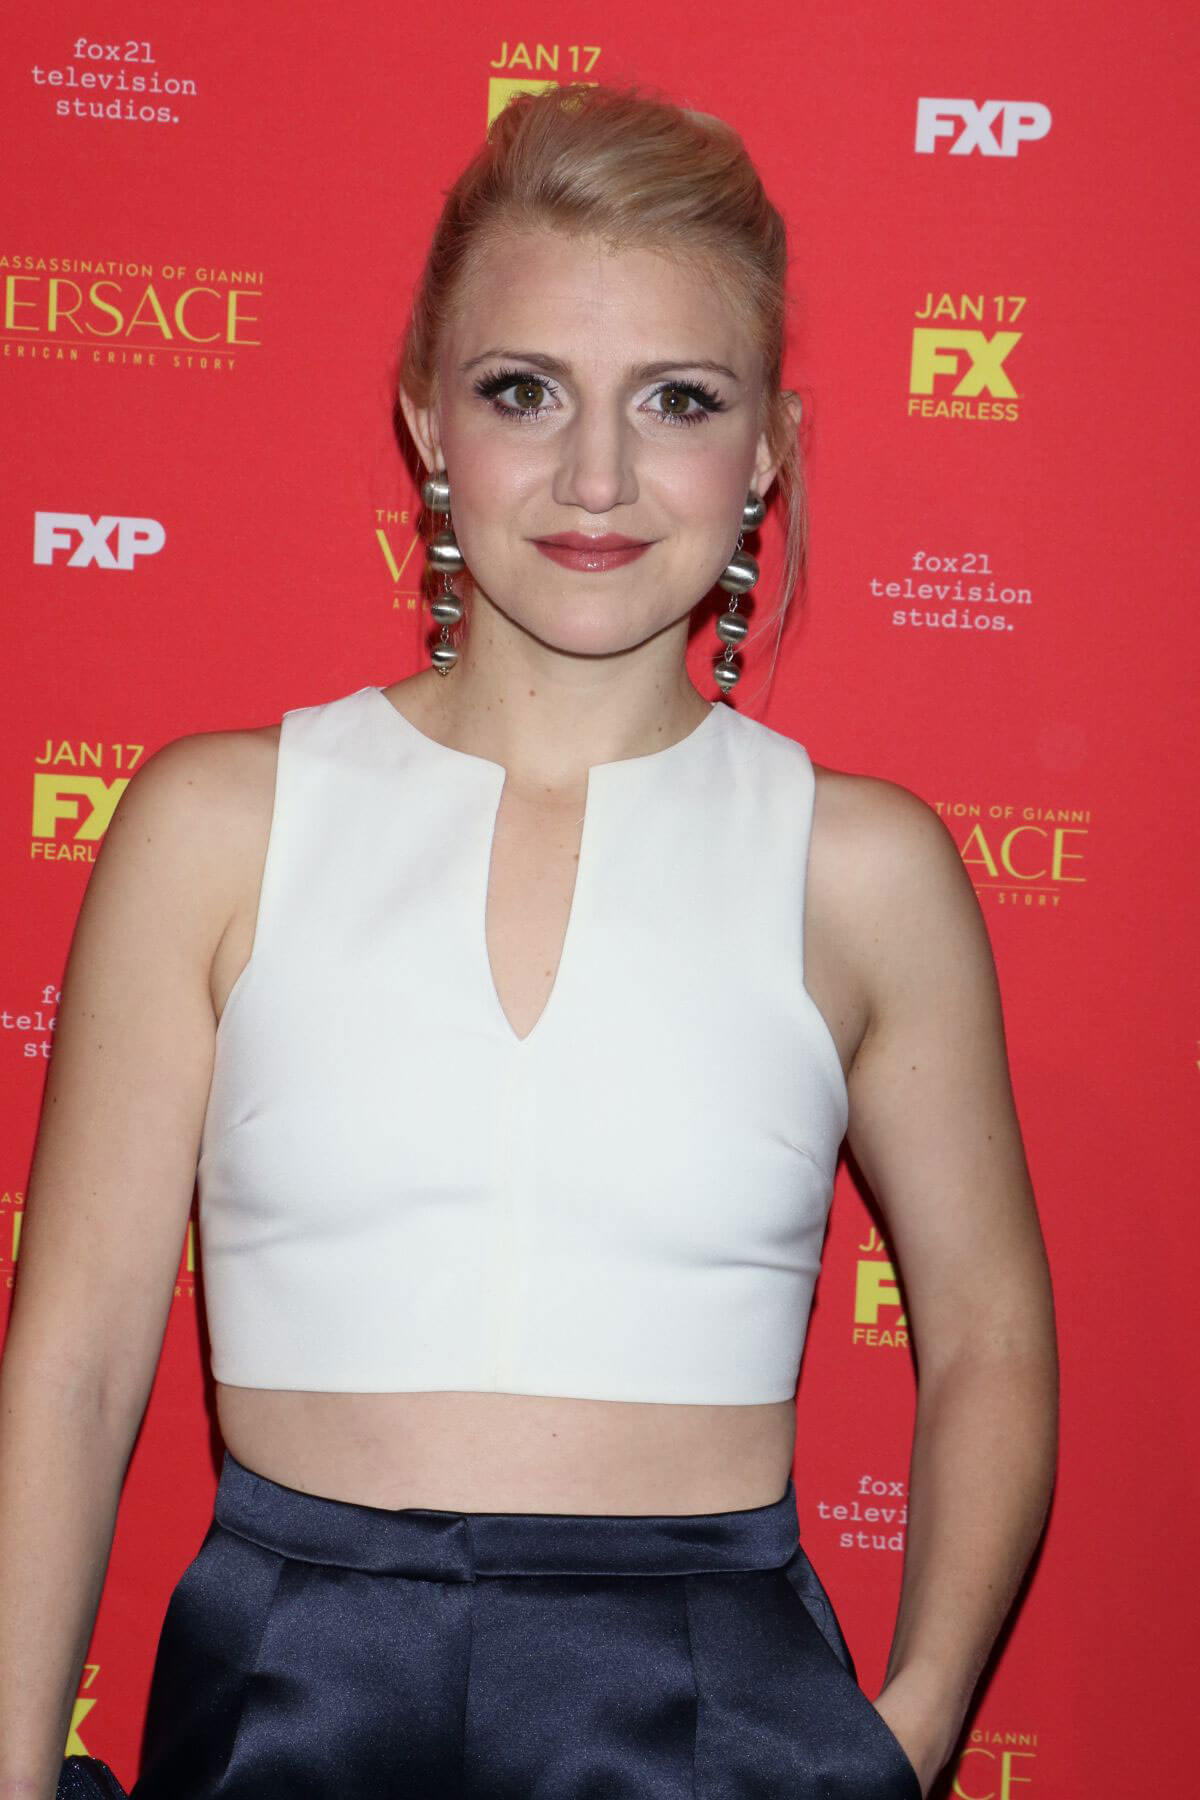 Cleavage Annaleigh Ashford nude (61 photo), Topless, Fappening, Feet, panties 2019